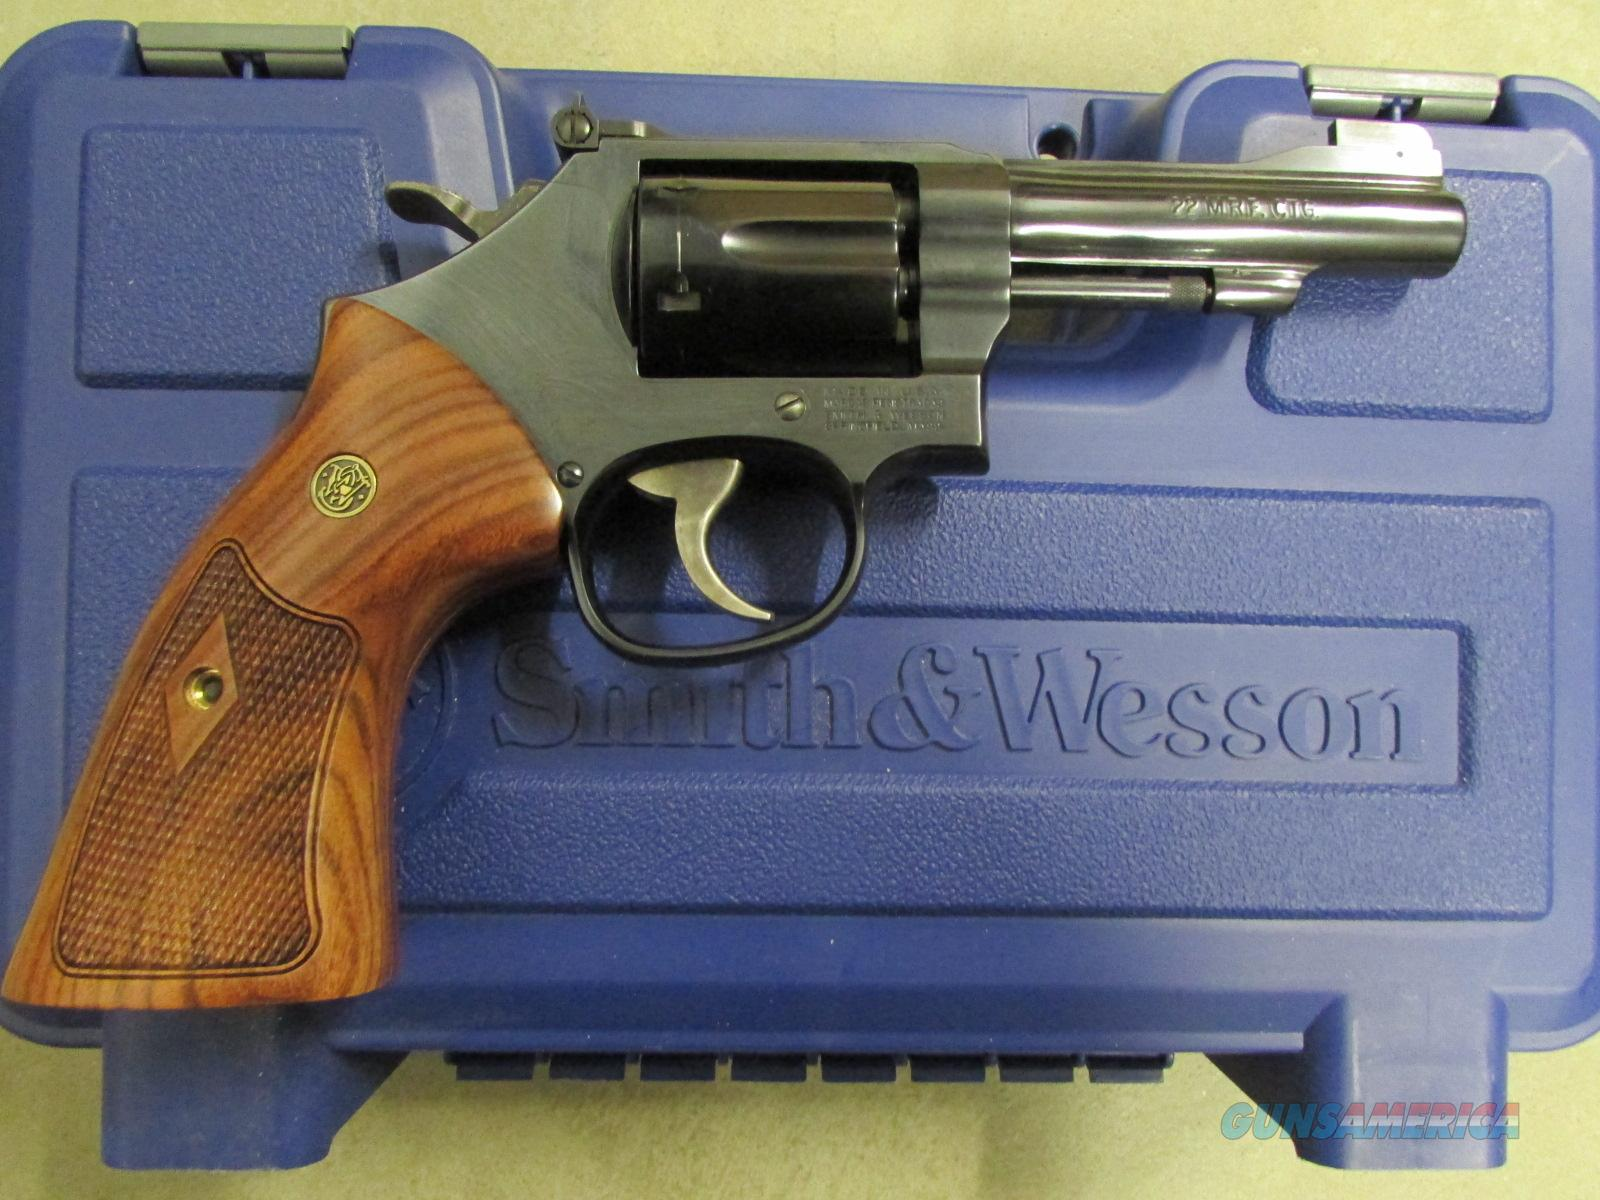 "Smith & Wesson Model 48 .22 Magnum 4"" 150717  Guns > Pistols > Smith & Wesson Revolvers > Full Frame Revolver"